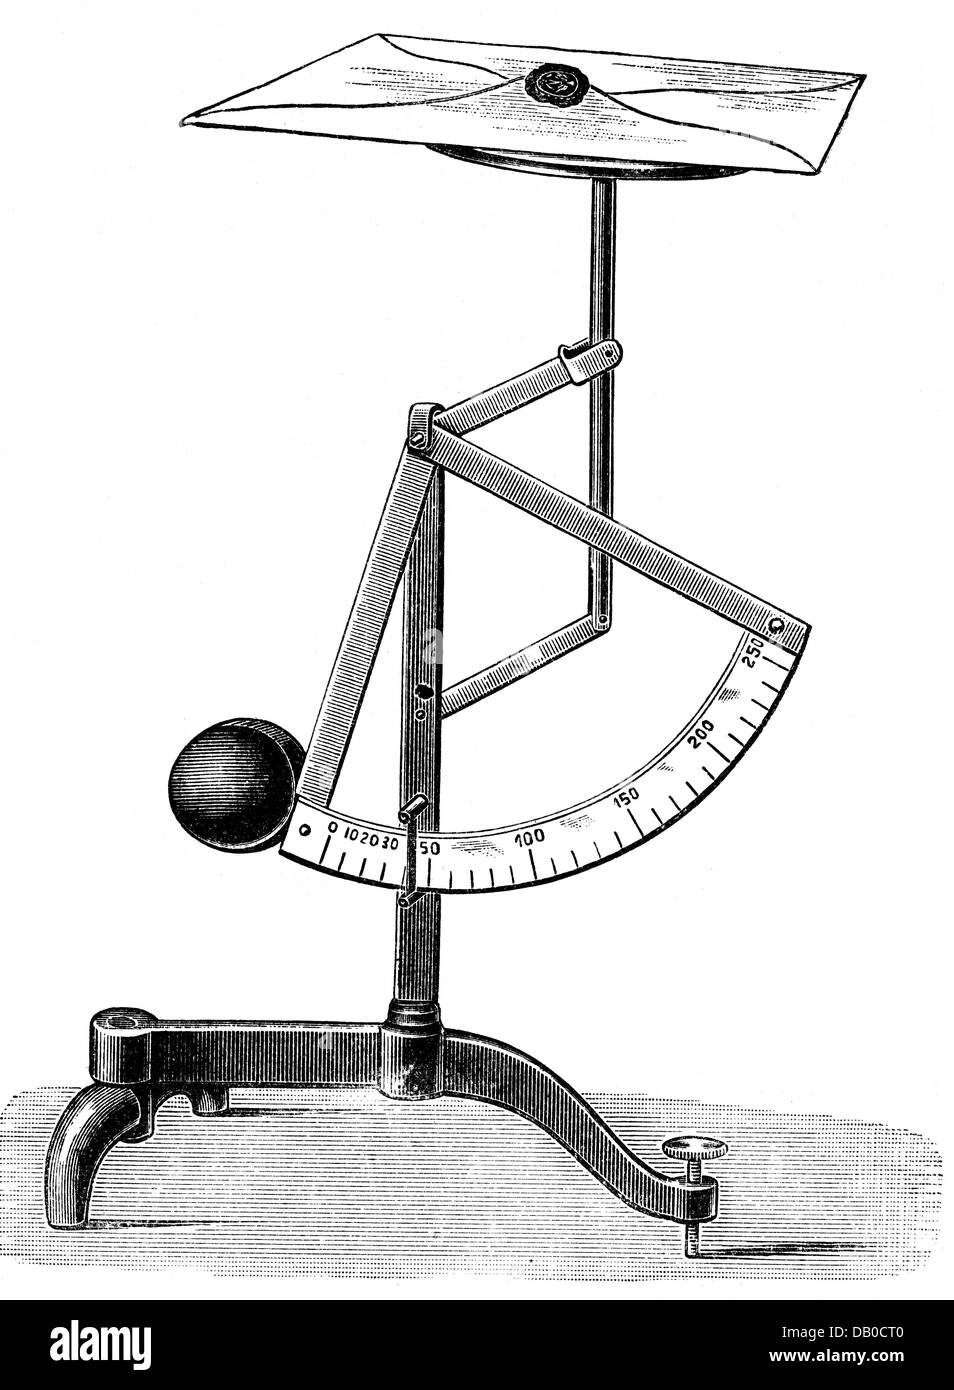 mail, device, letter balance, wood engraving, Germany, late 19th century, scale, scales, letter, letters, weighing, - Stock Image